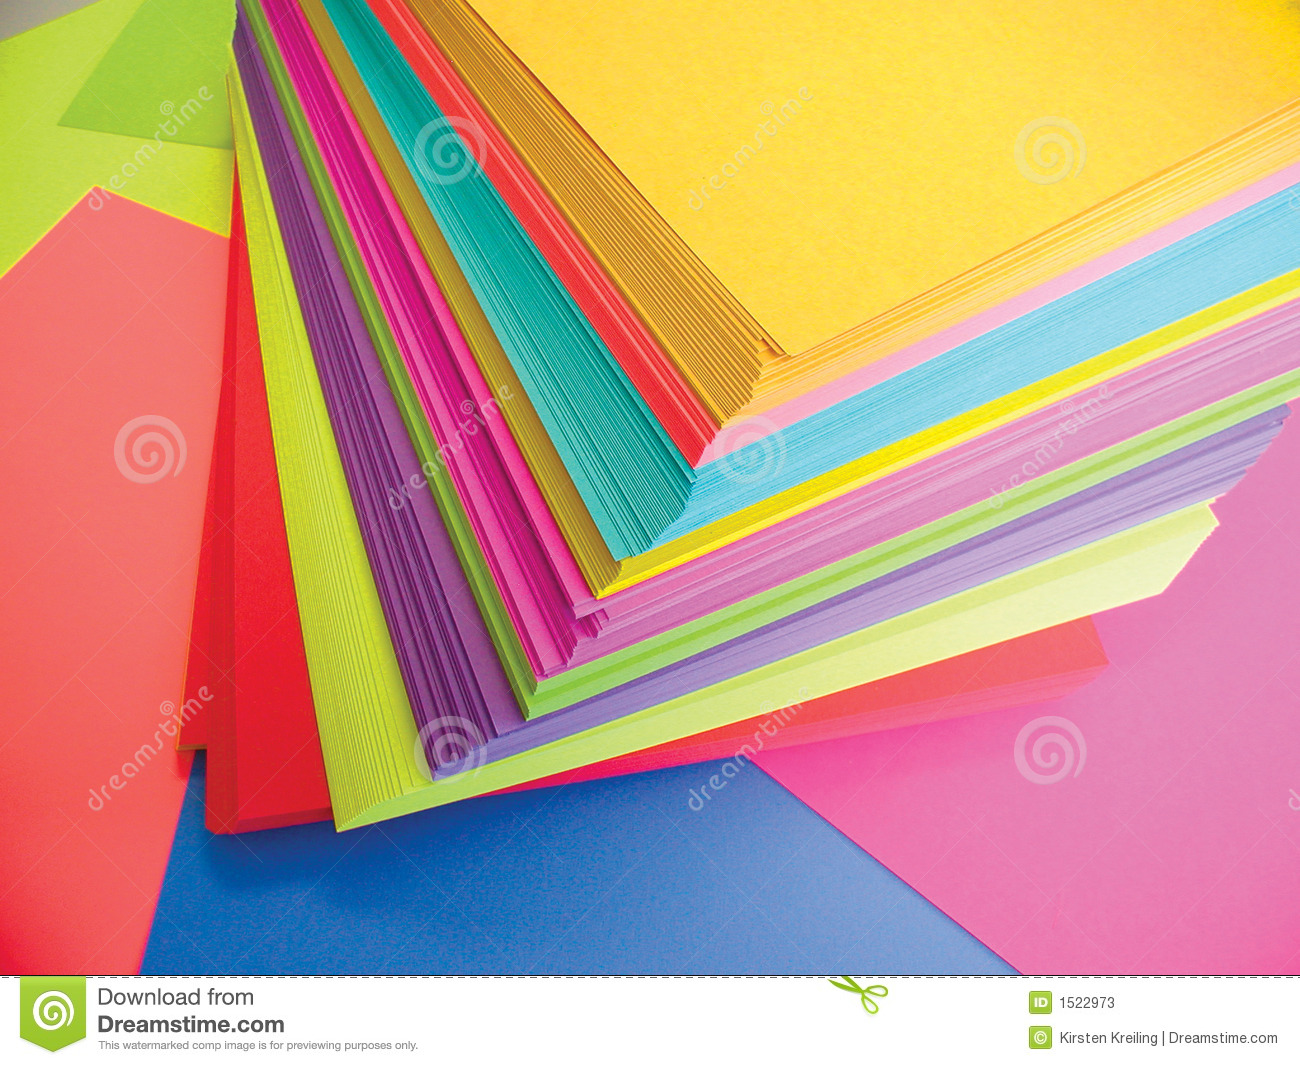 Colored Paper Stock Photos - Image: 1522973